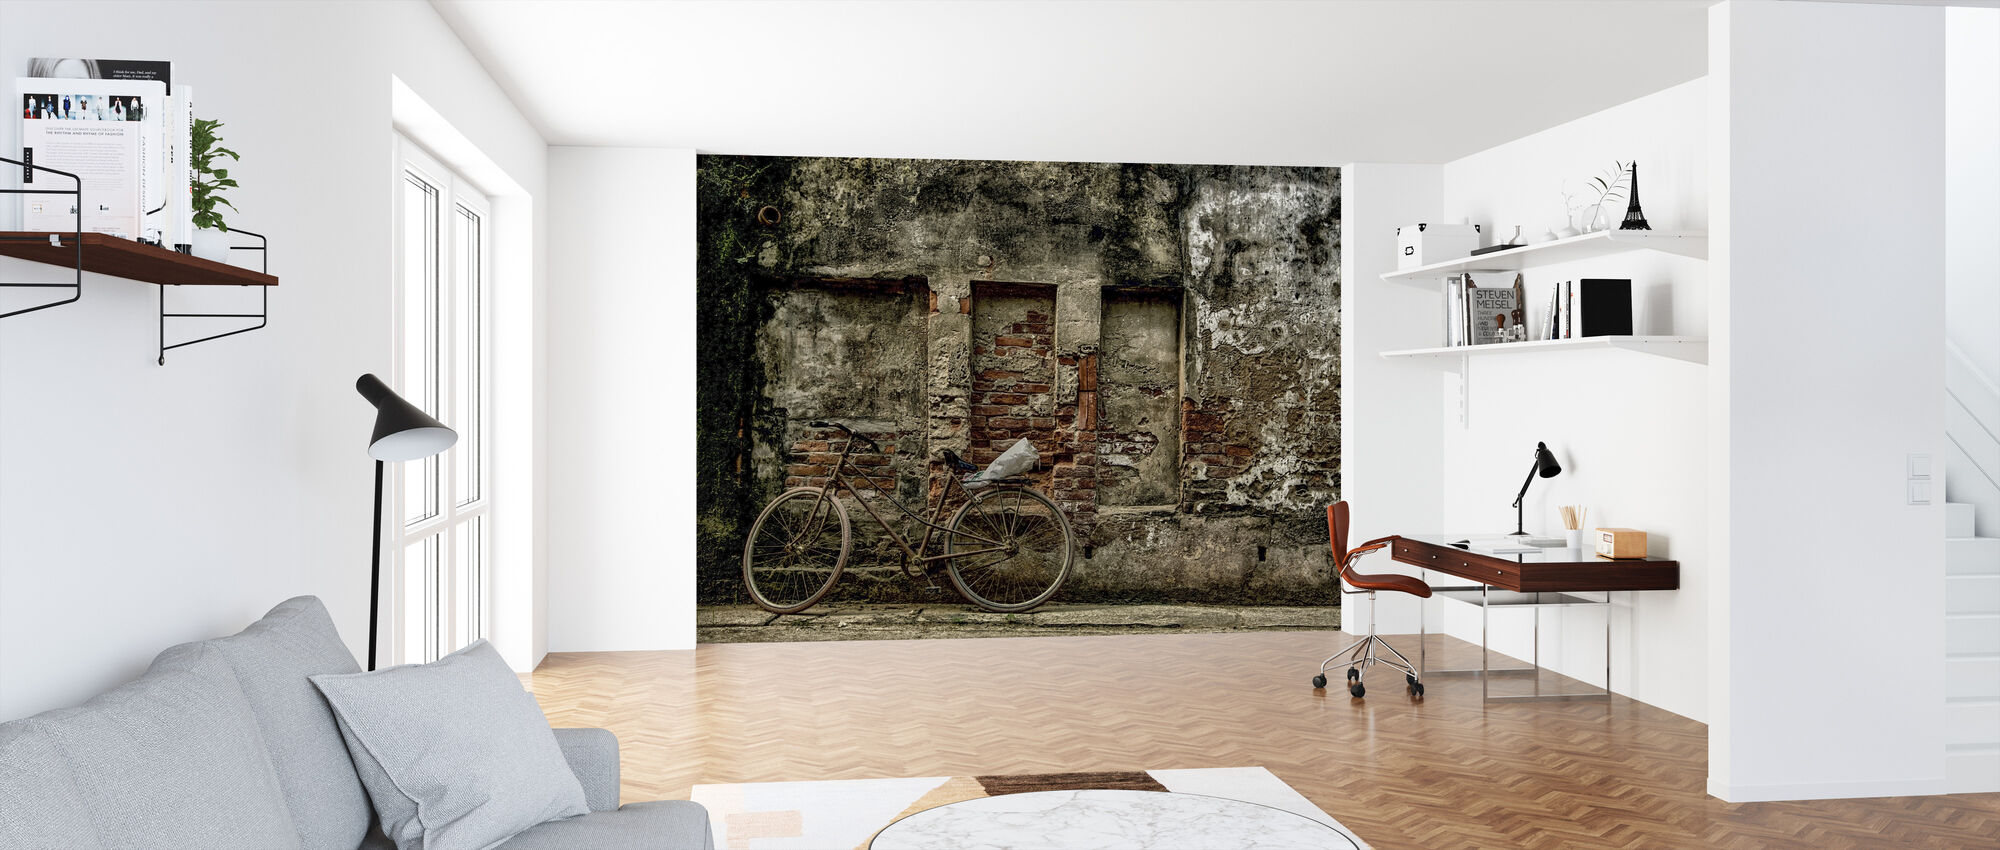 Old Rusty Bicycle - Wallpaper - Office